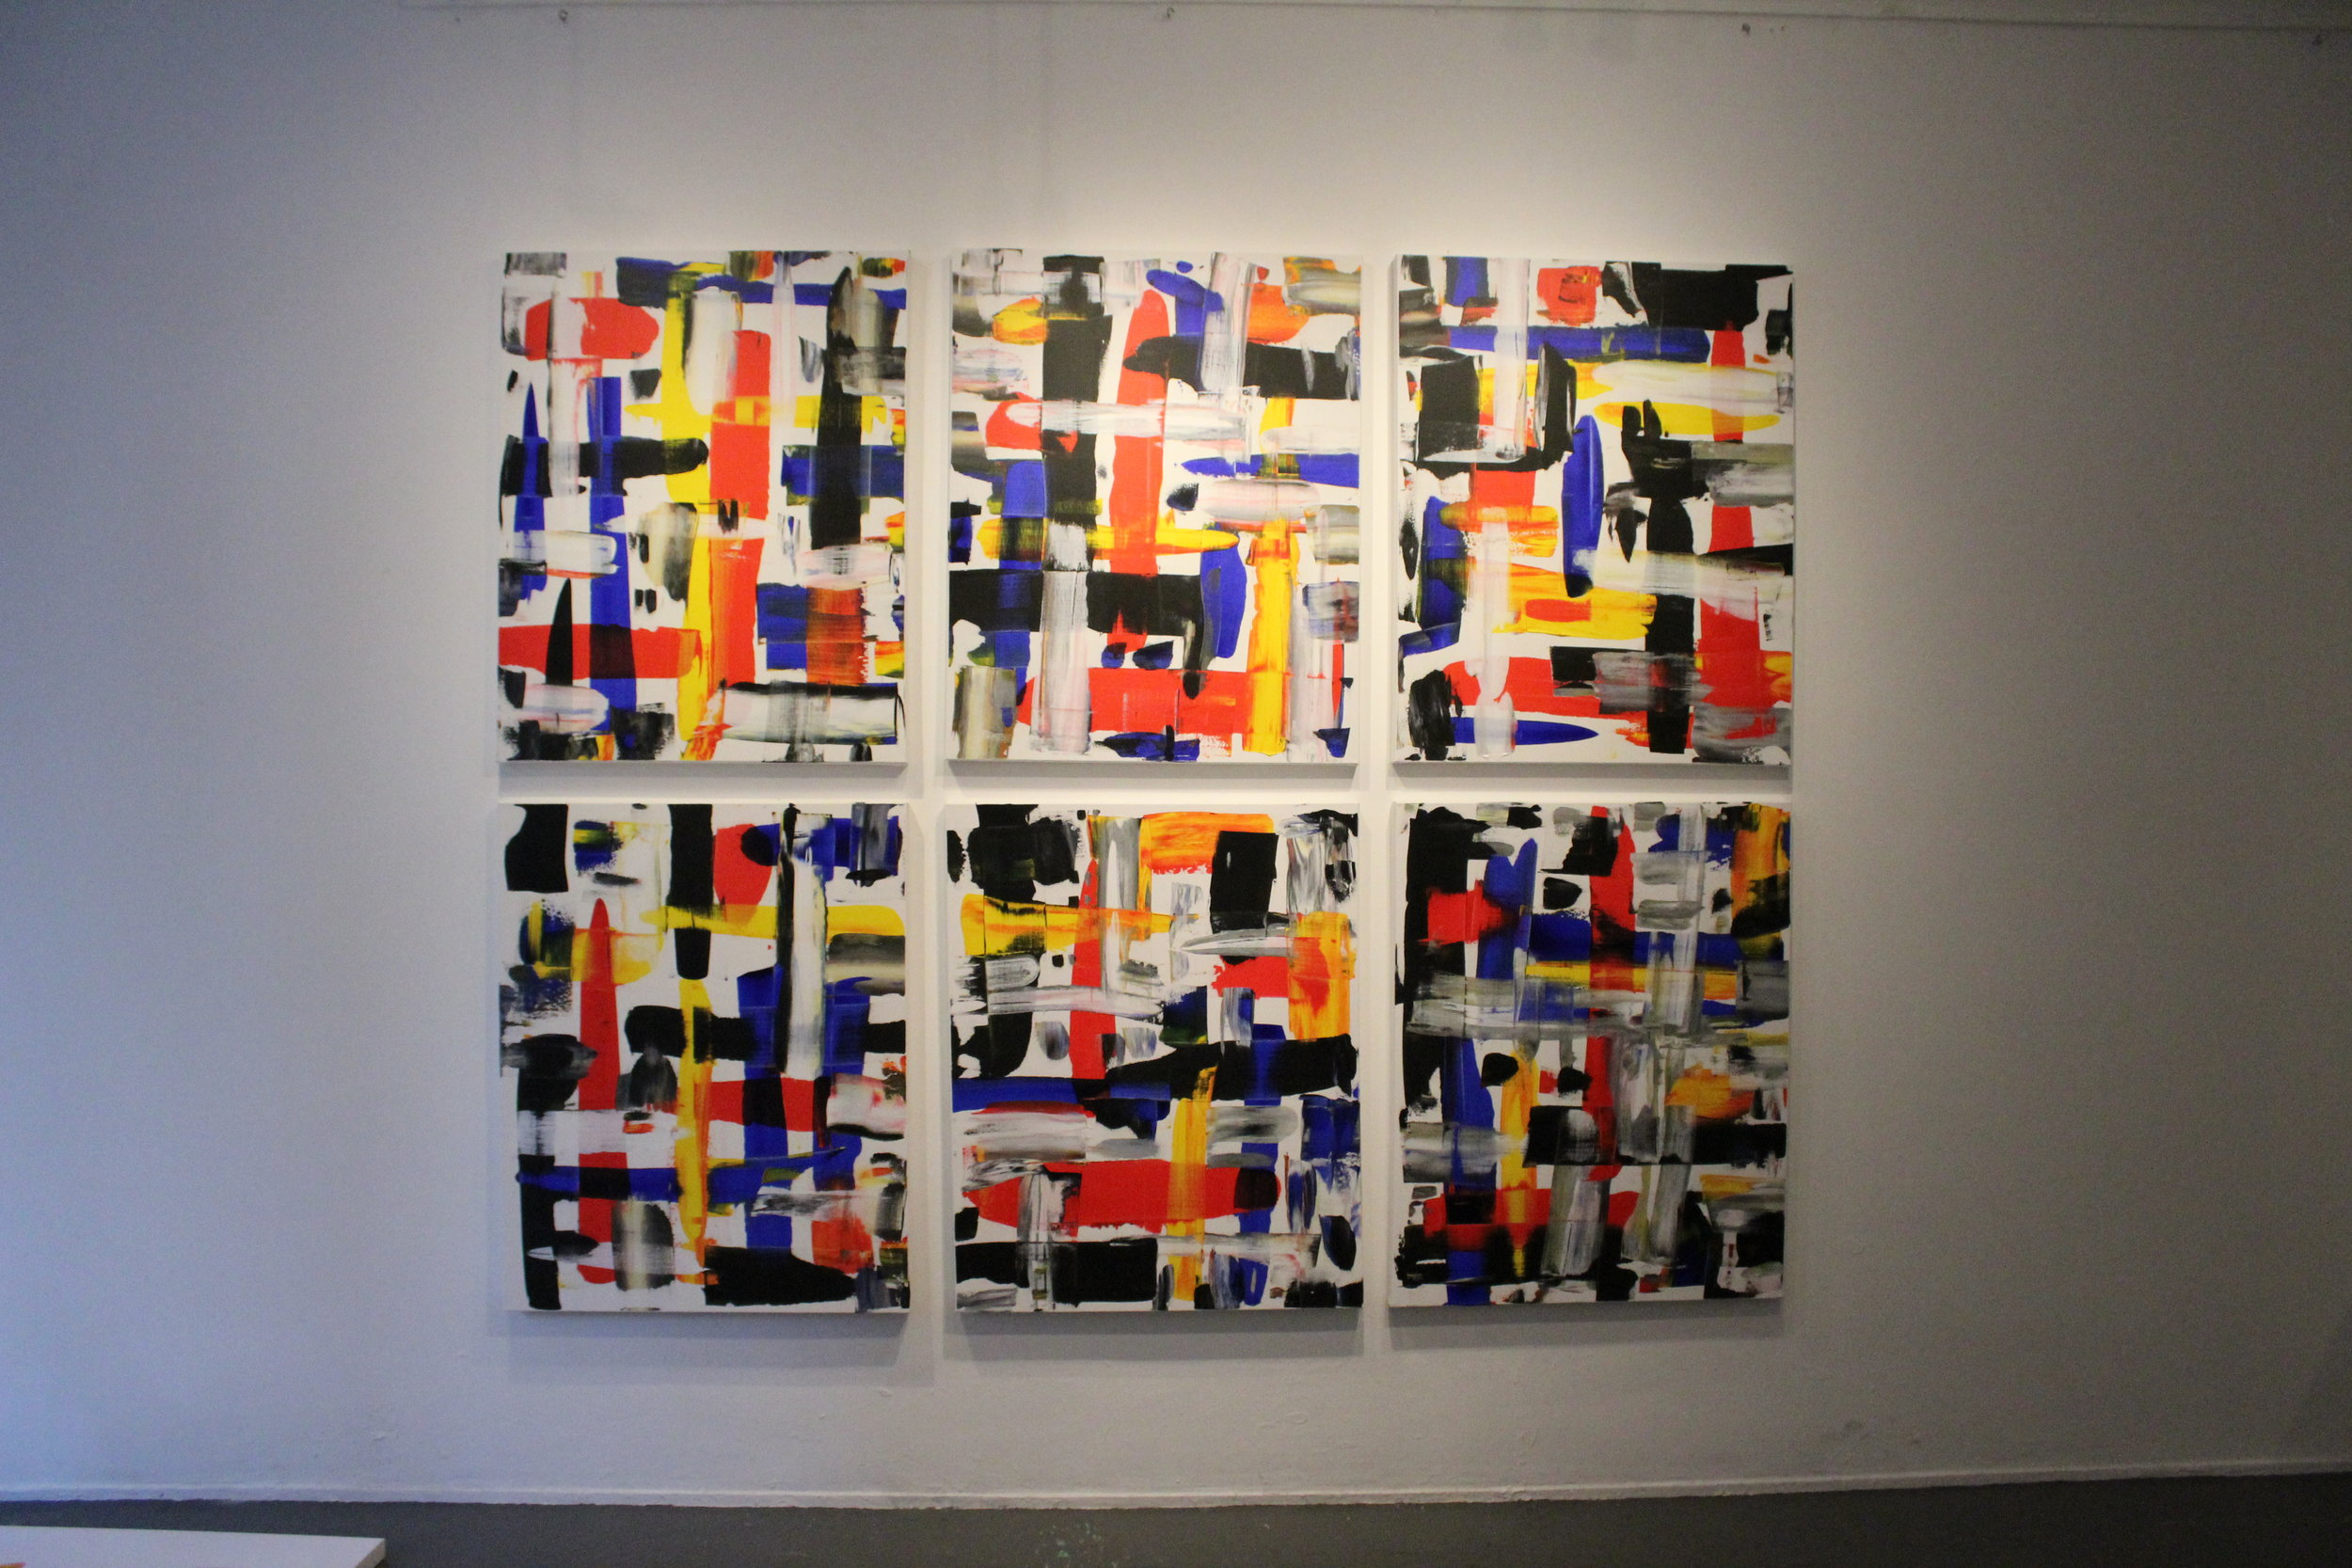 six-tych by European contemporary artist Harry van Gestel